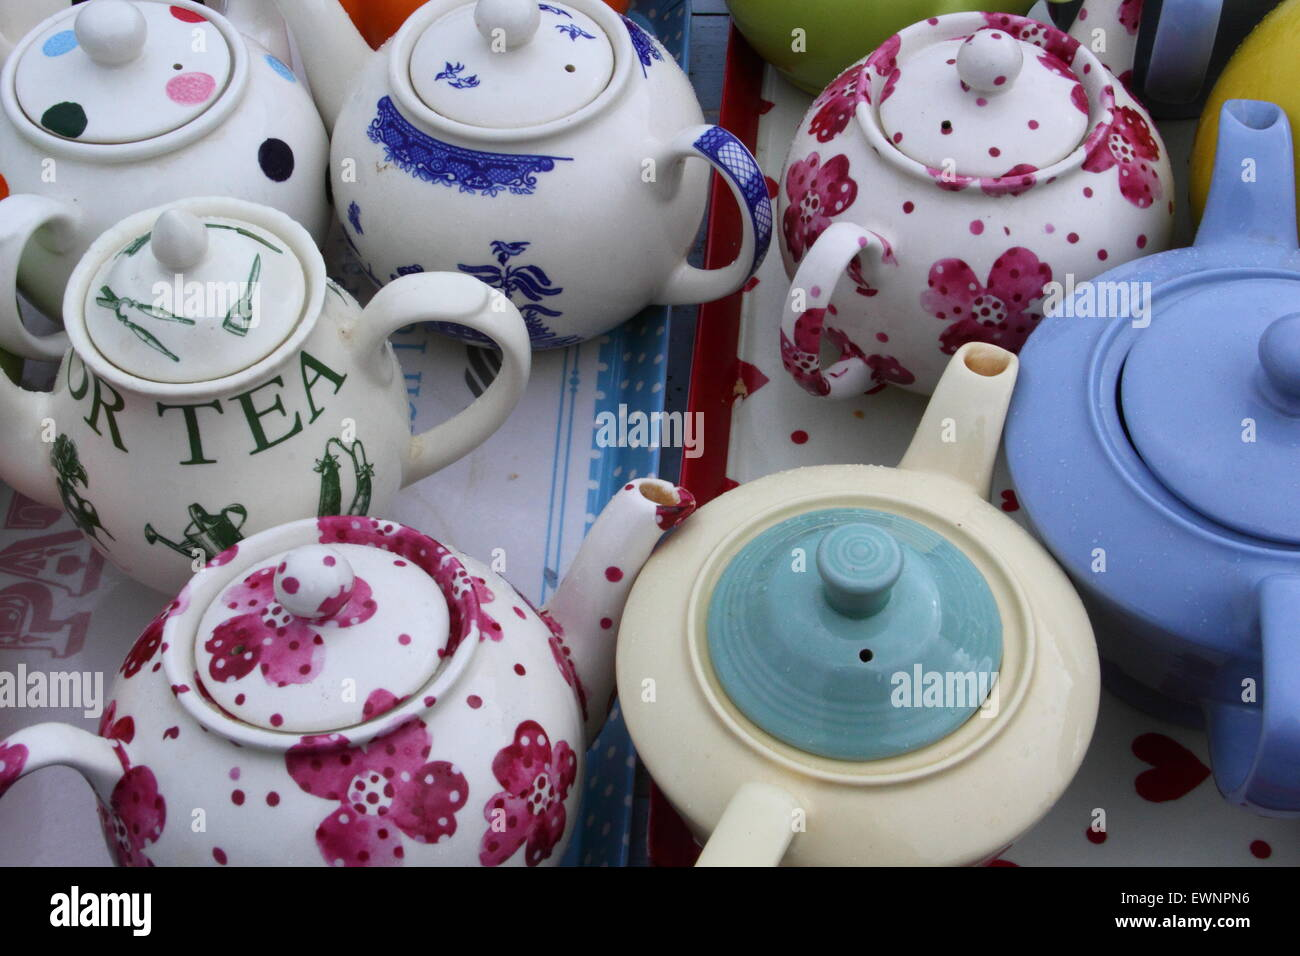 Vintage teapots in a stylish pop up tearoom at a traditional English summer  festival, England,UK - Stock Image